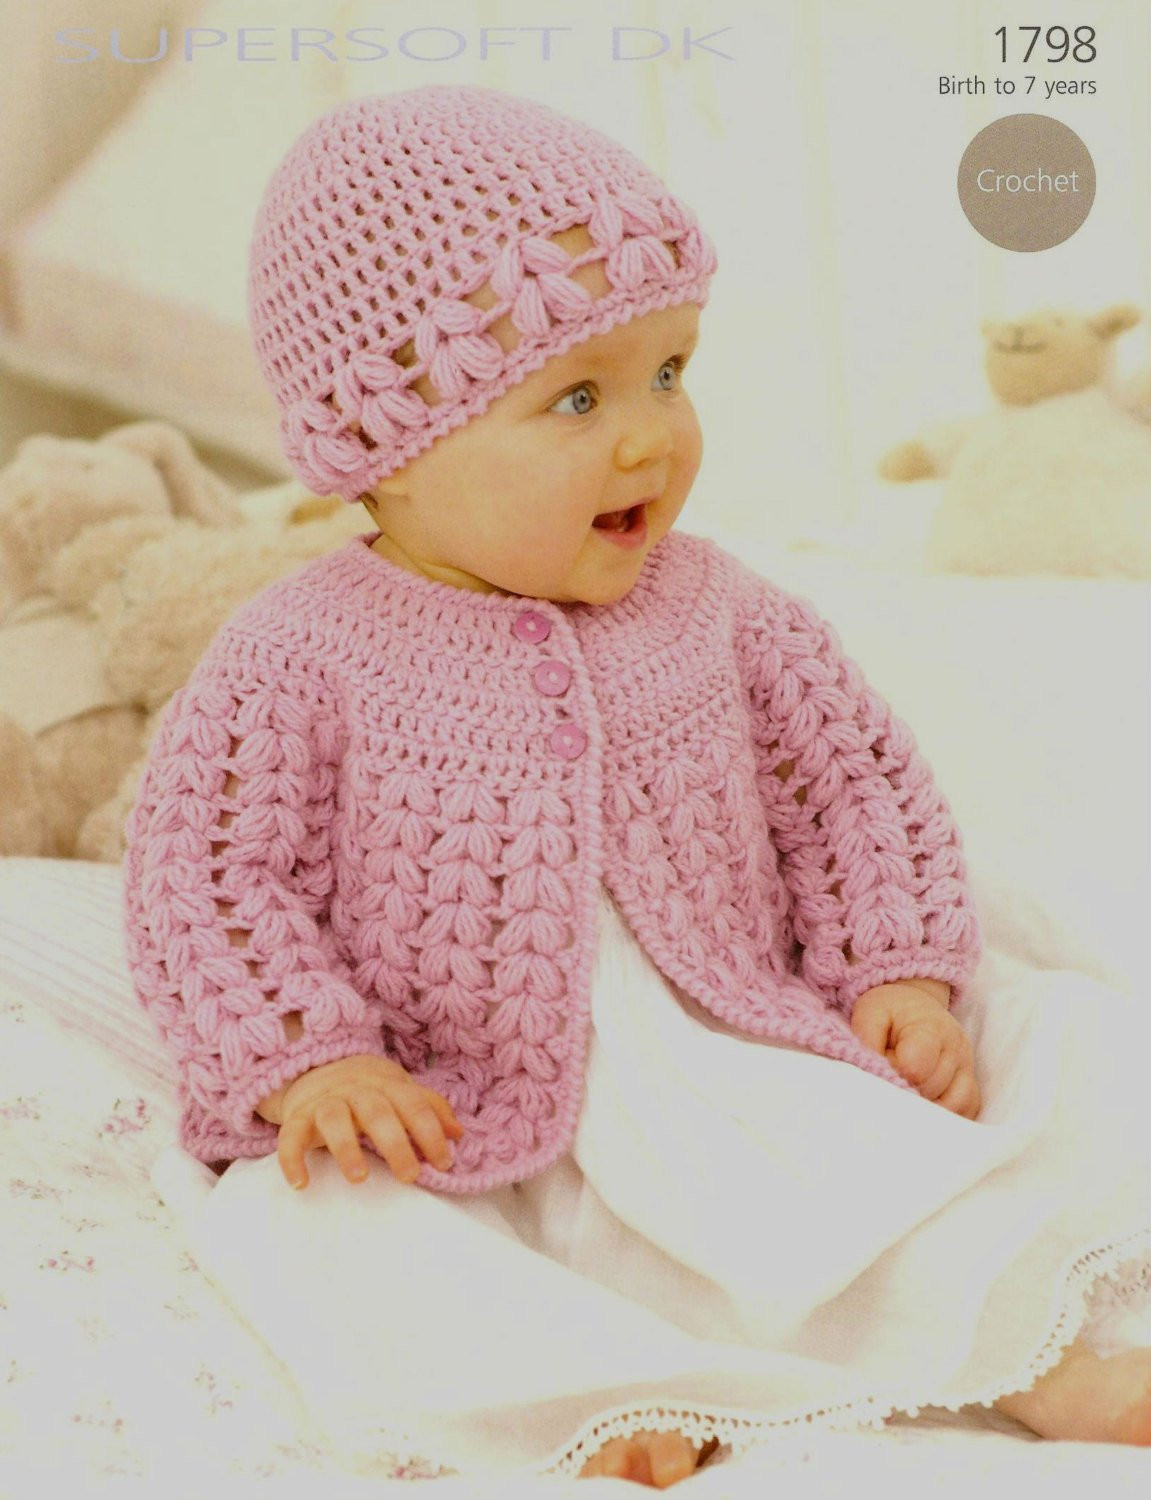 Toddler Sweater Crochet Pattern Inspirational Crochet Baby Cardigan and Hat Vintage Pattern Size Newborn to Of Attractive 41 Models toddler Sweater Crochet Pattern